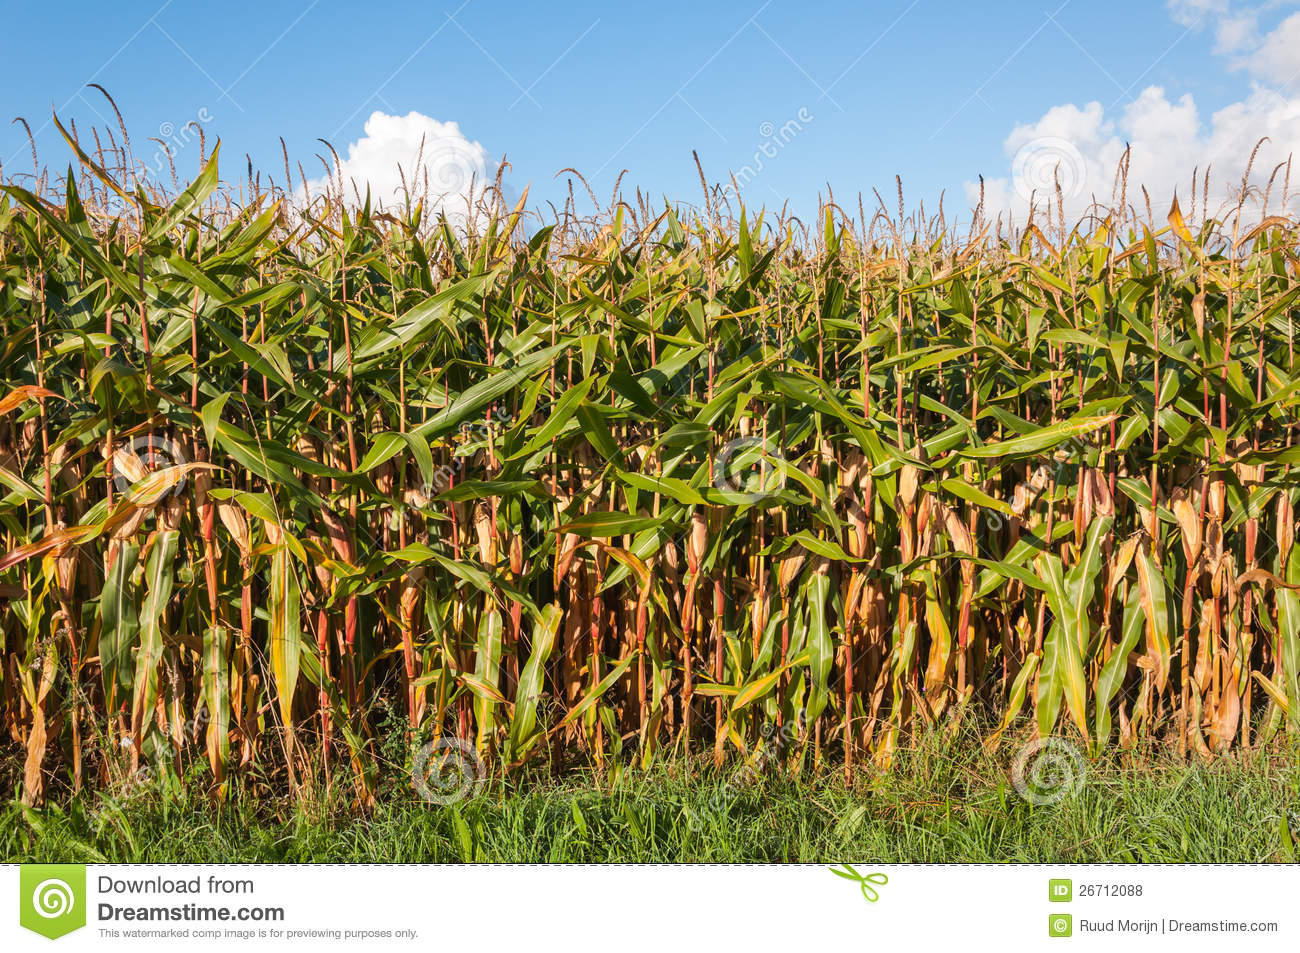 On The Edge Of A Field With Fodder Maize Royalty Free Stock Photos.